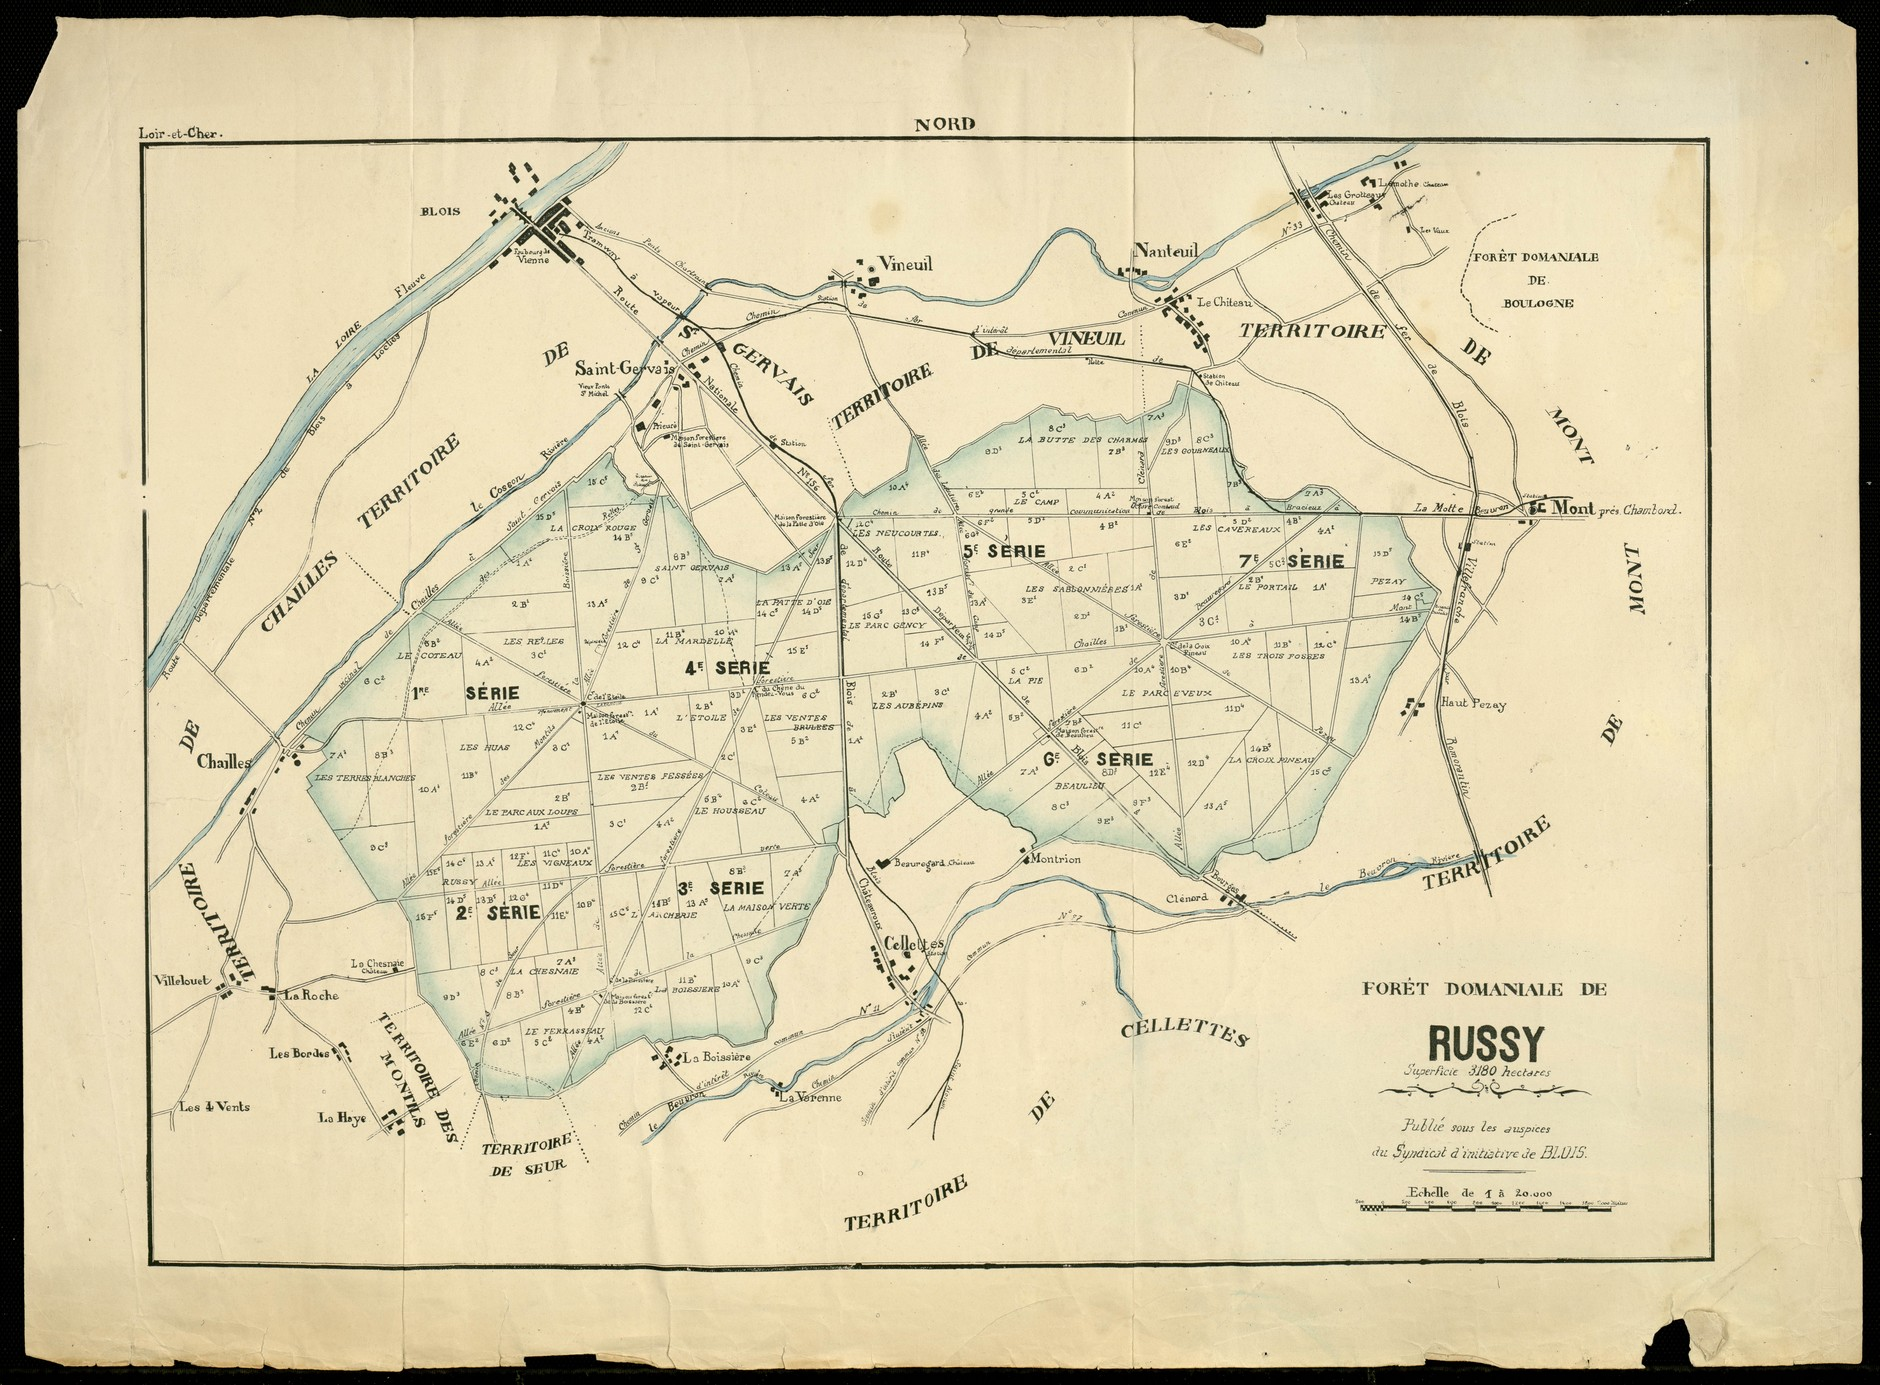 Plan de la forêt de Russy, Syndicat d'initiative de Blois, ca 1920